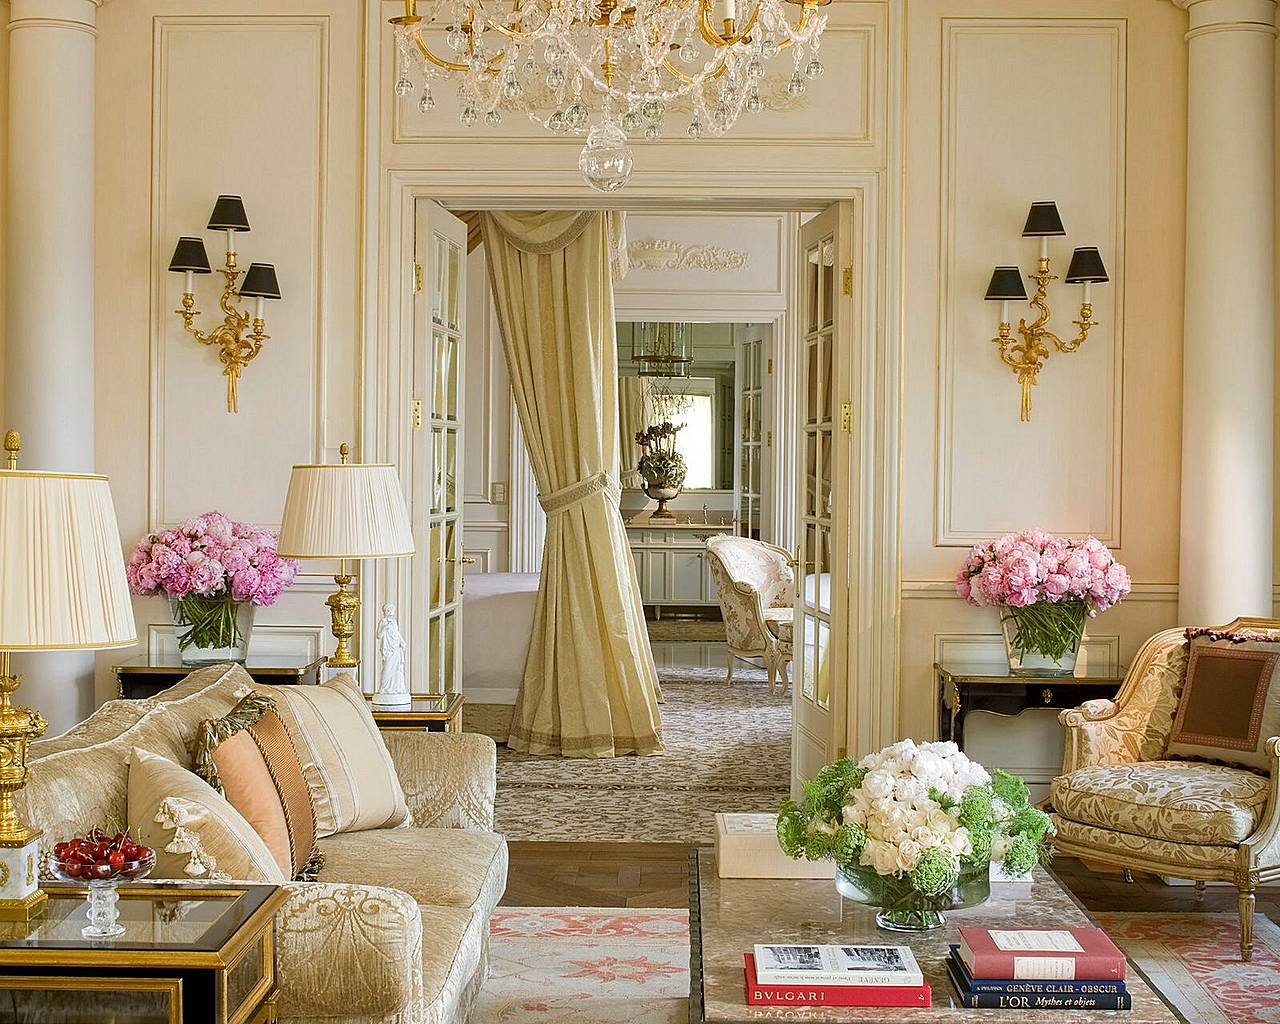 French Interior Decor Ideas For Shabby Chic Living Room Interior Design